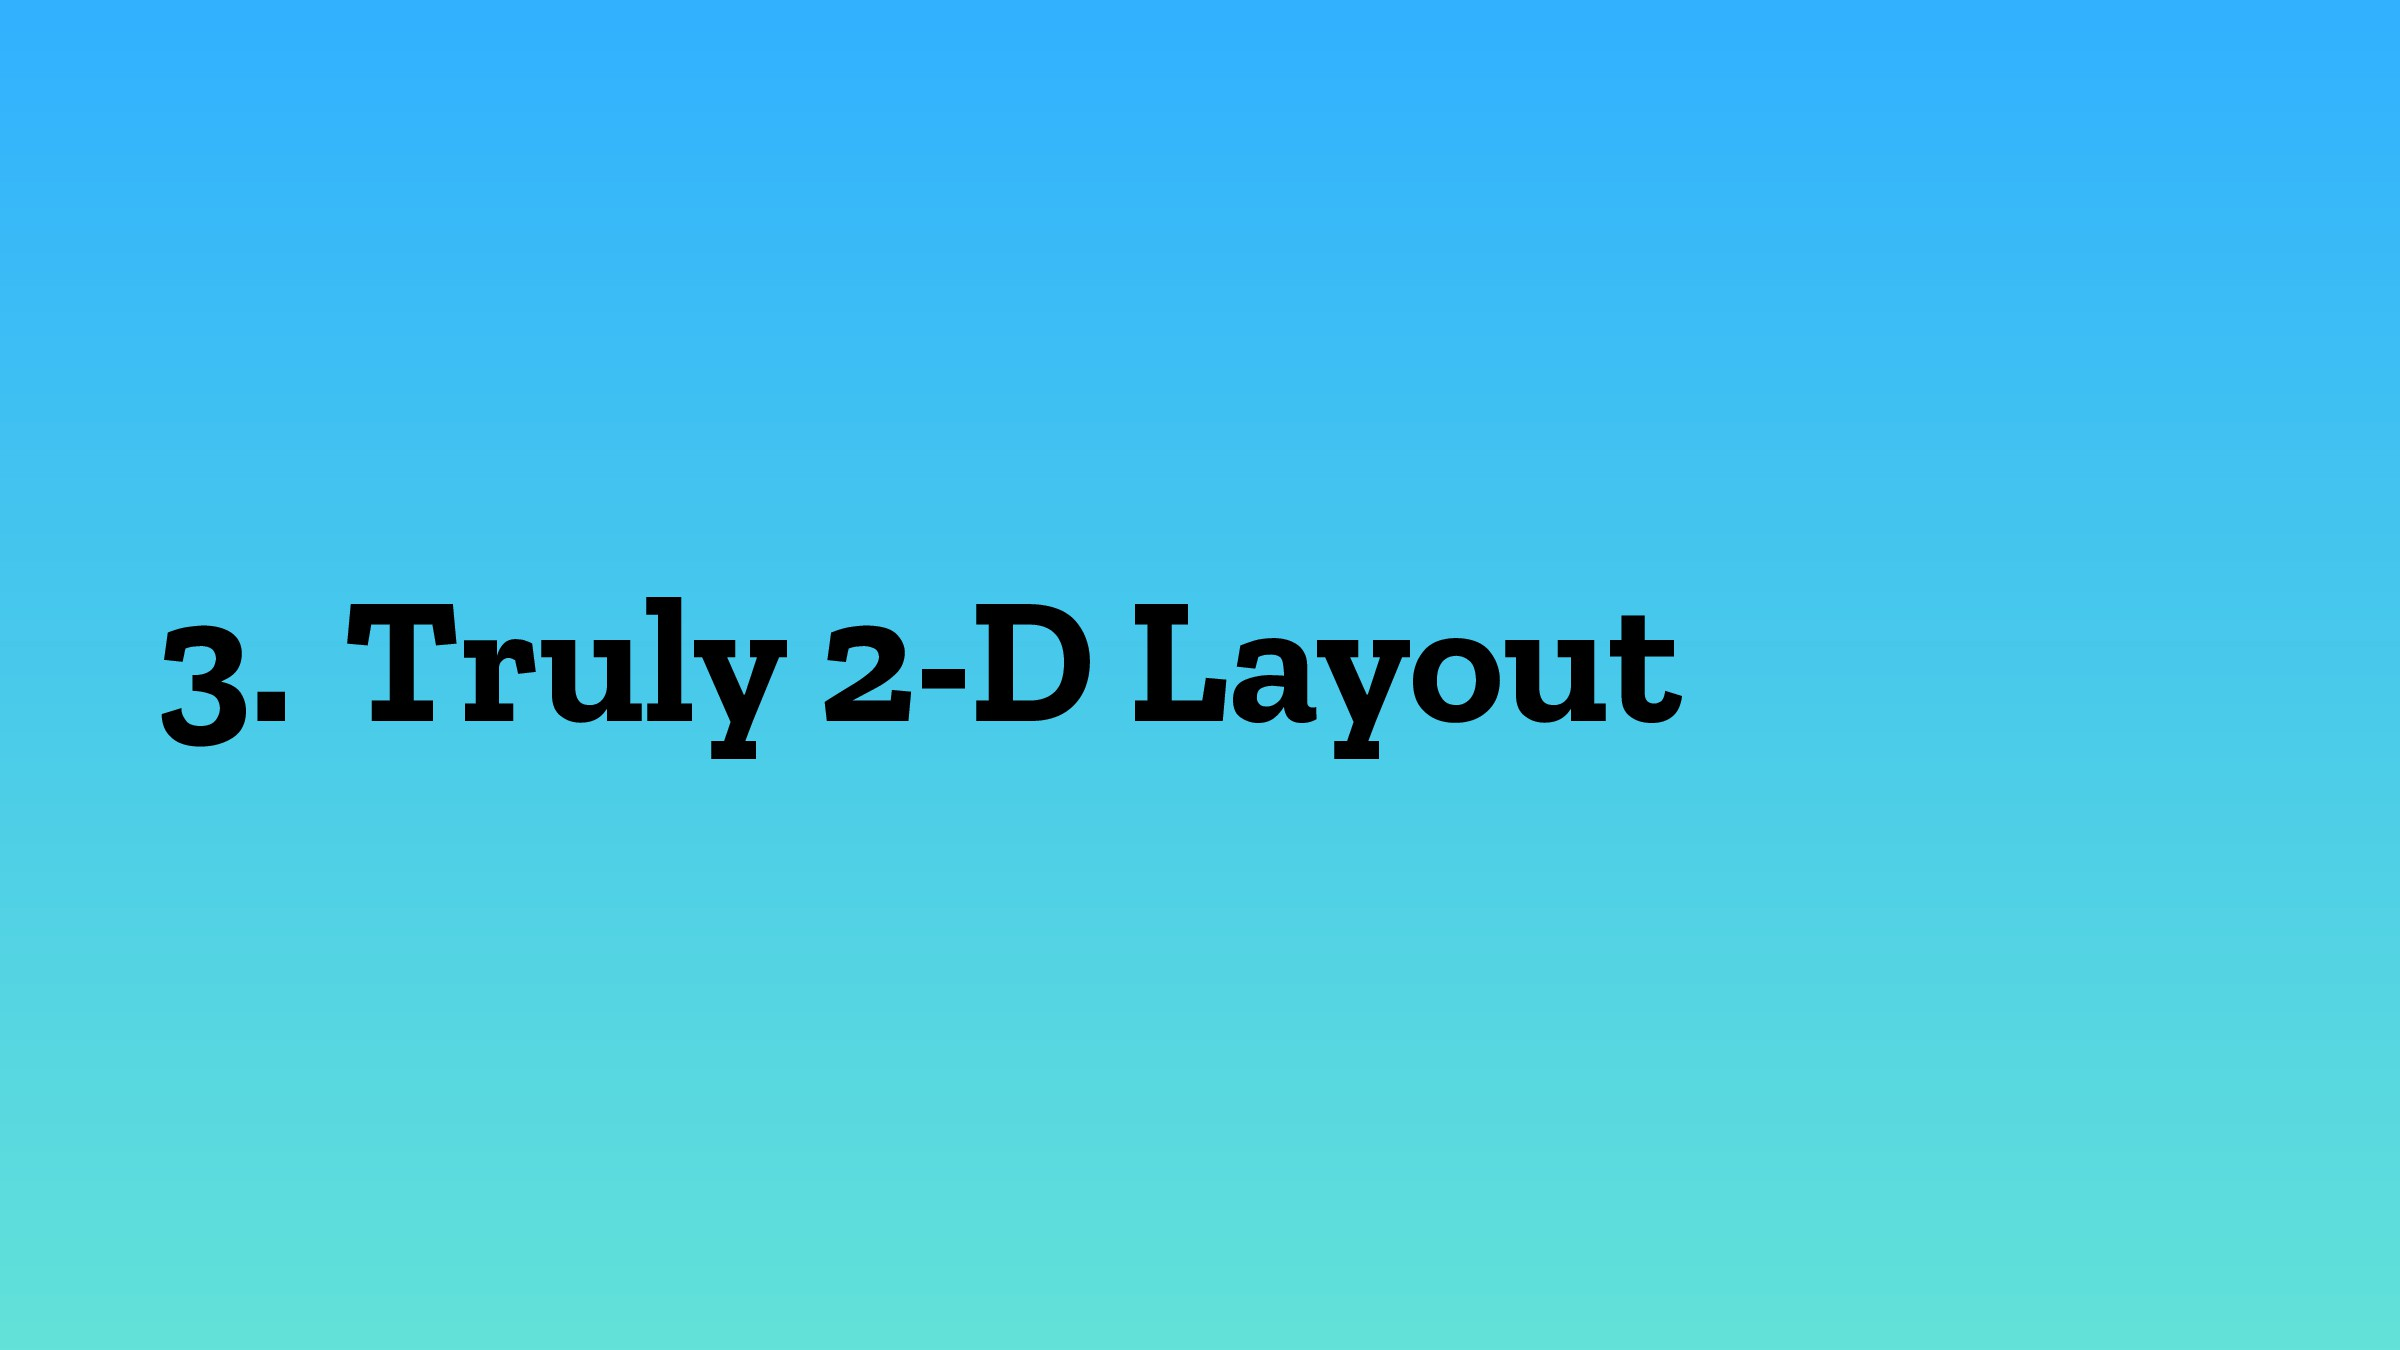 3. Truly 2-D Layout